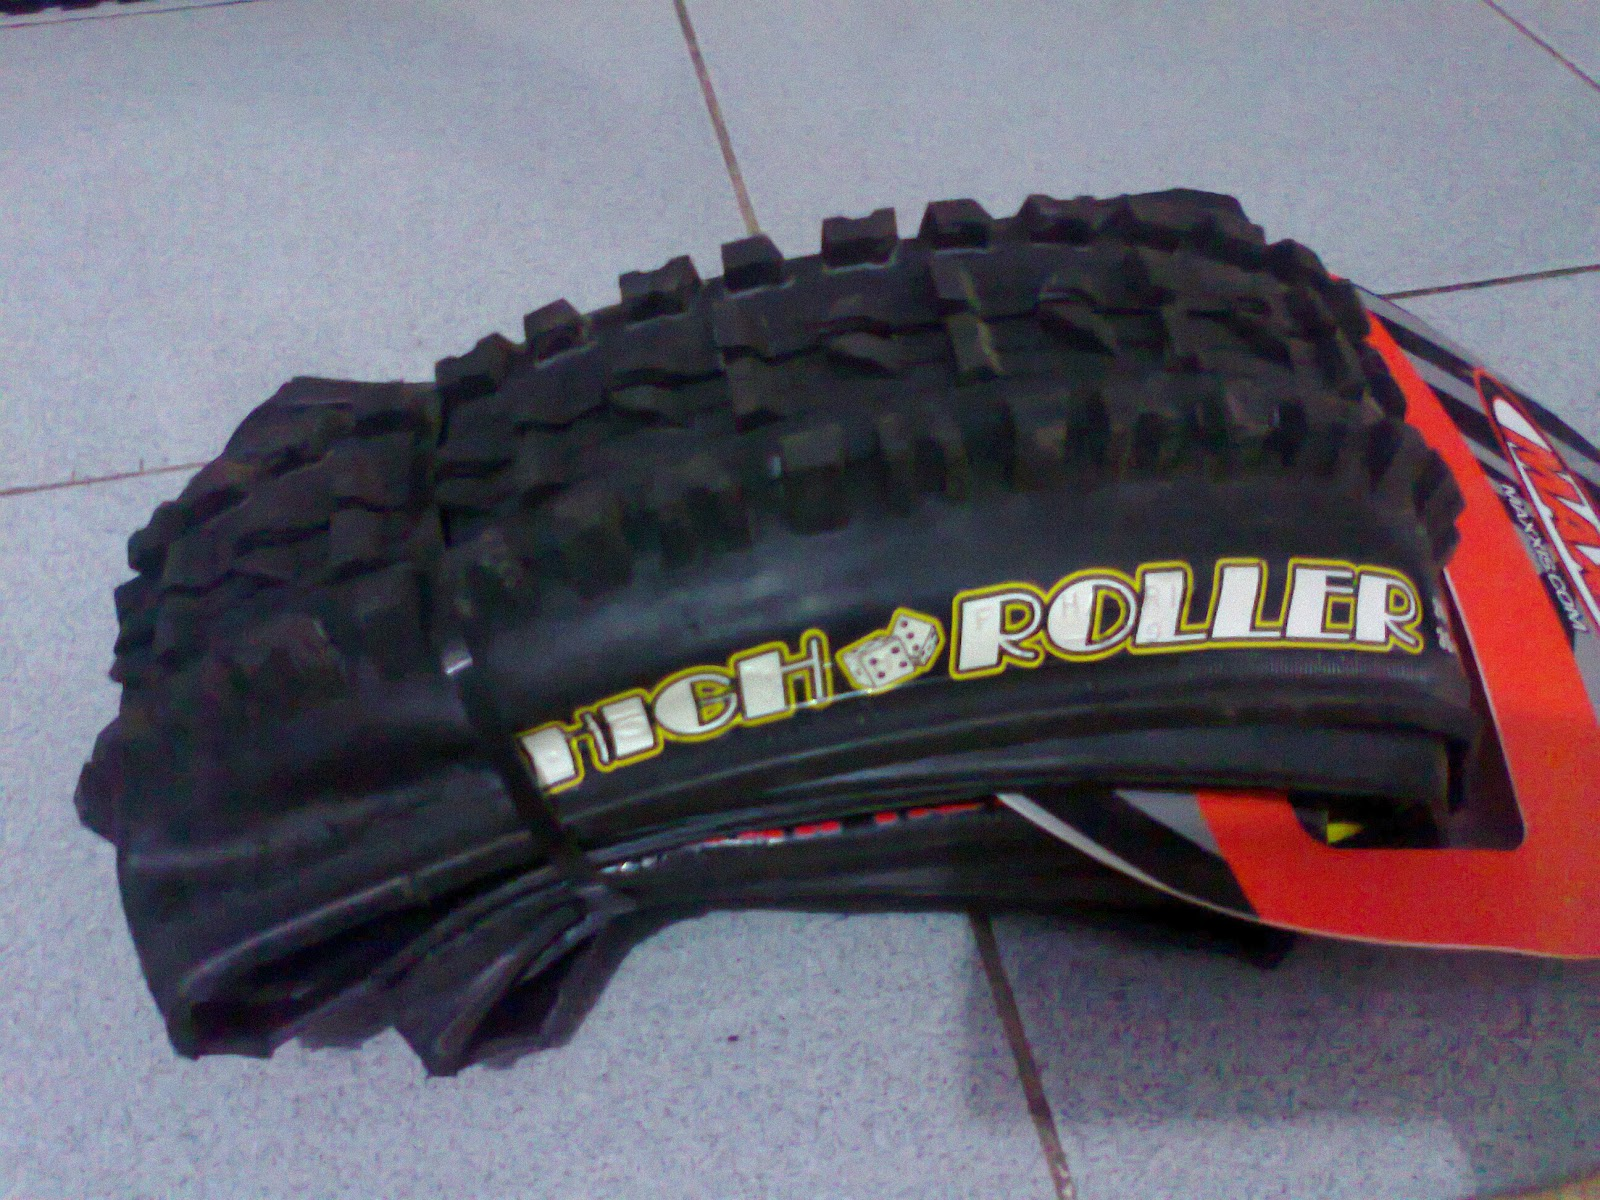 BORN TO BRUISE!: Folker AM 33 & Maxxis High Roller 2.35